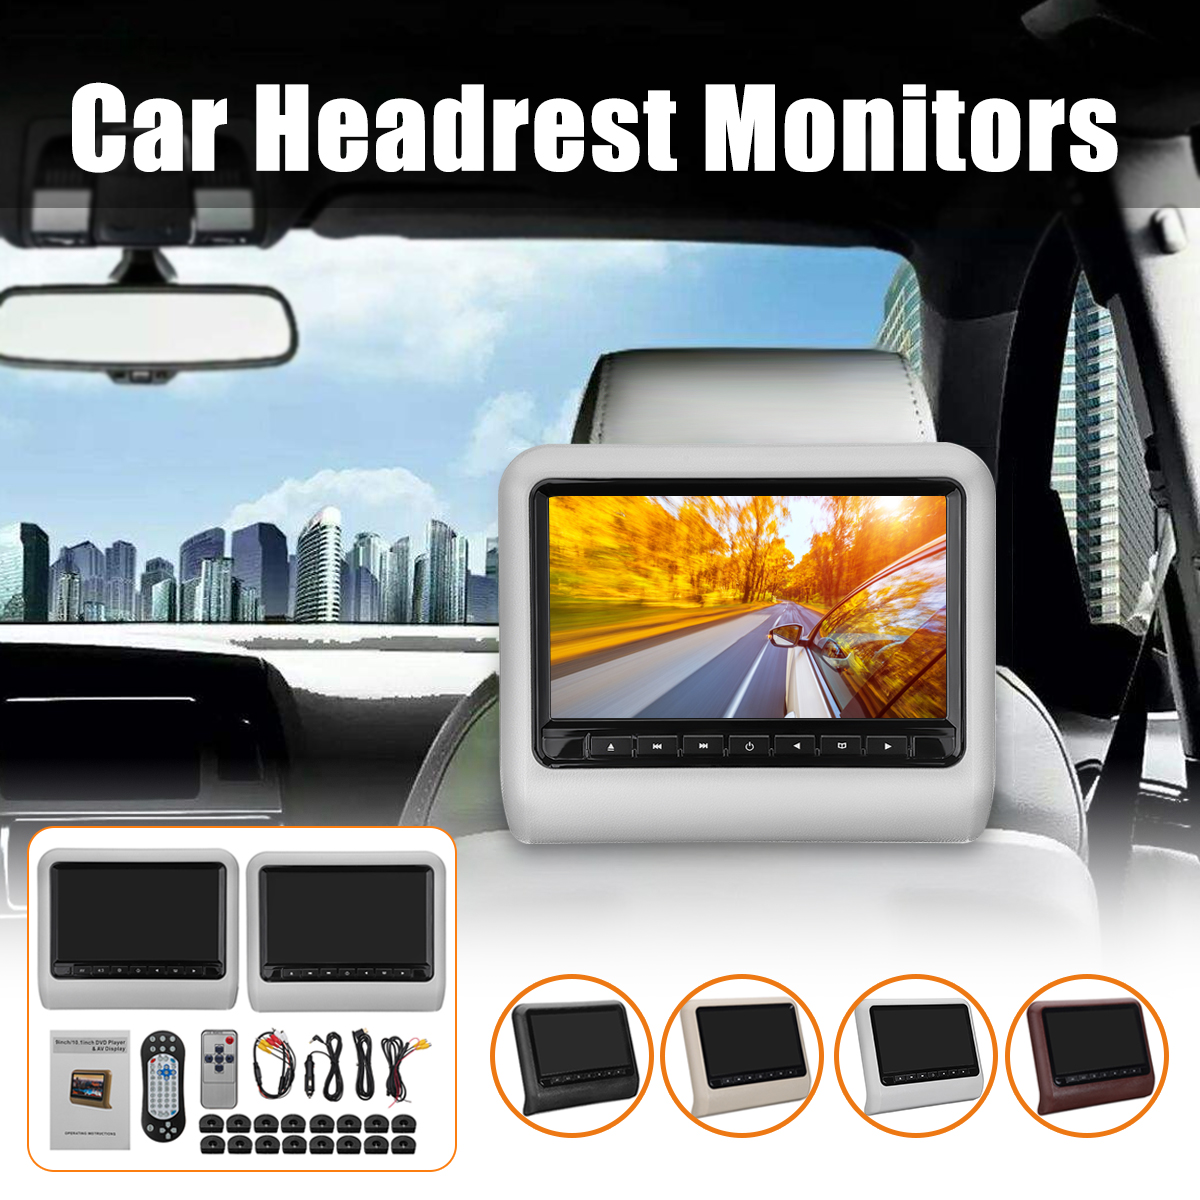 1Set/2Pcs 9 inch Car Headrest Monitor DVD Player +AV Player Remote Controller with Cable kit Car Pillow LCD monitor SYSTEM цена